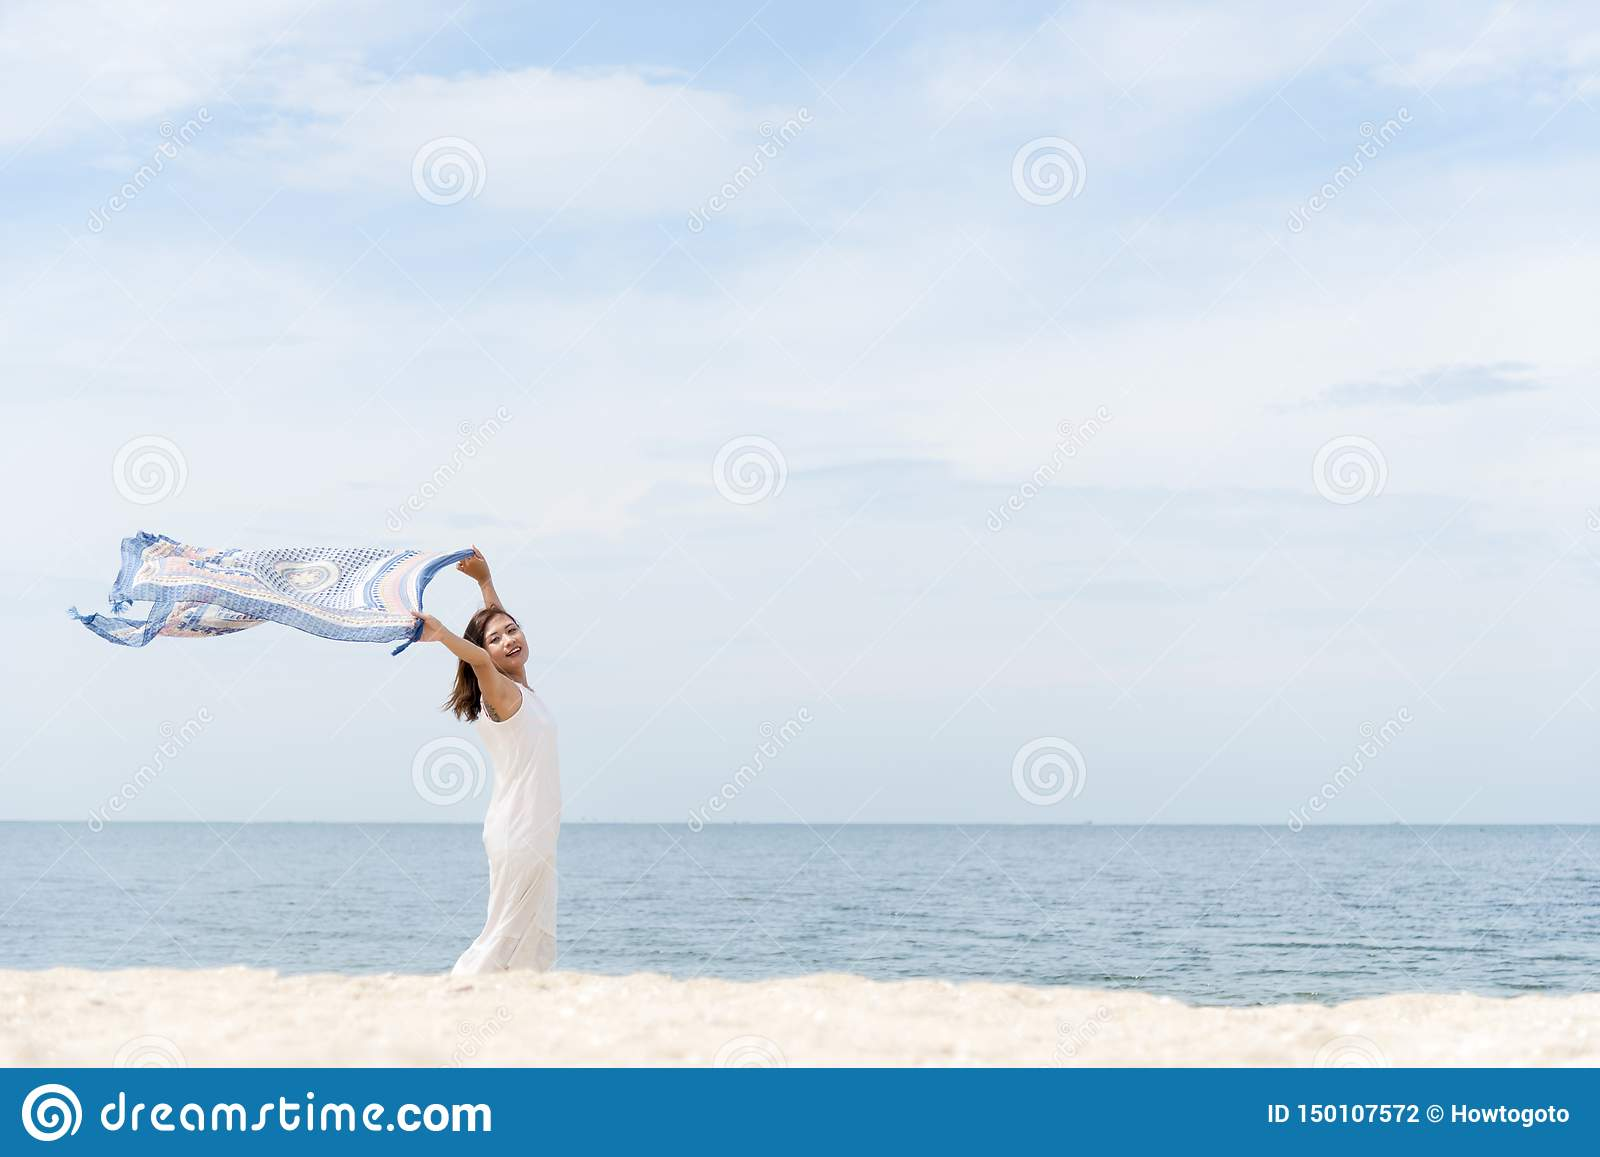 Woman on the beach, portrait of young happy woman wearing white dress and holding scraft on tropical sand beach. Summer Concept